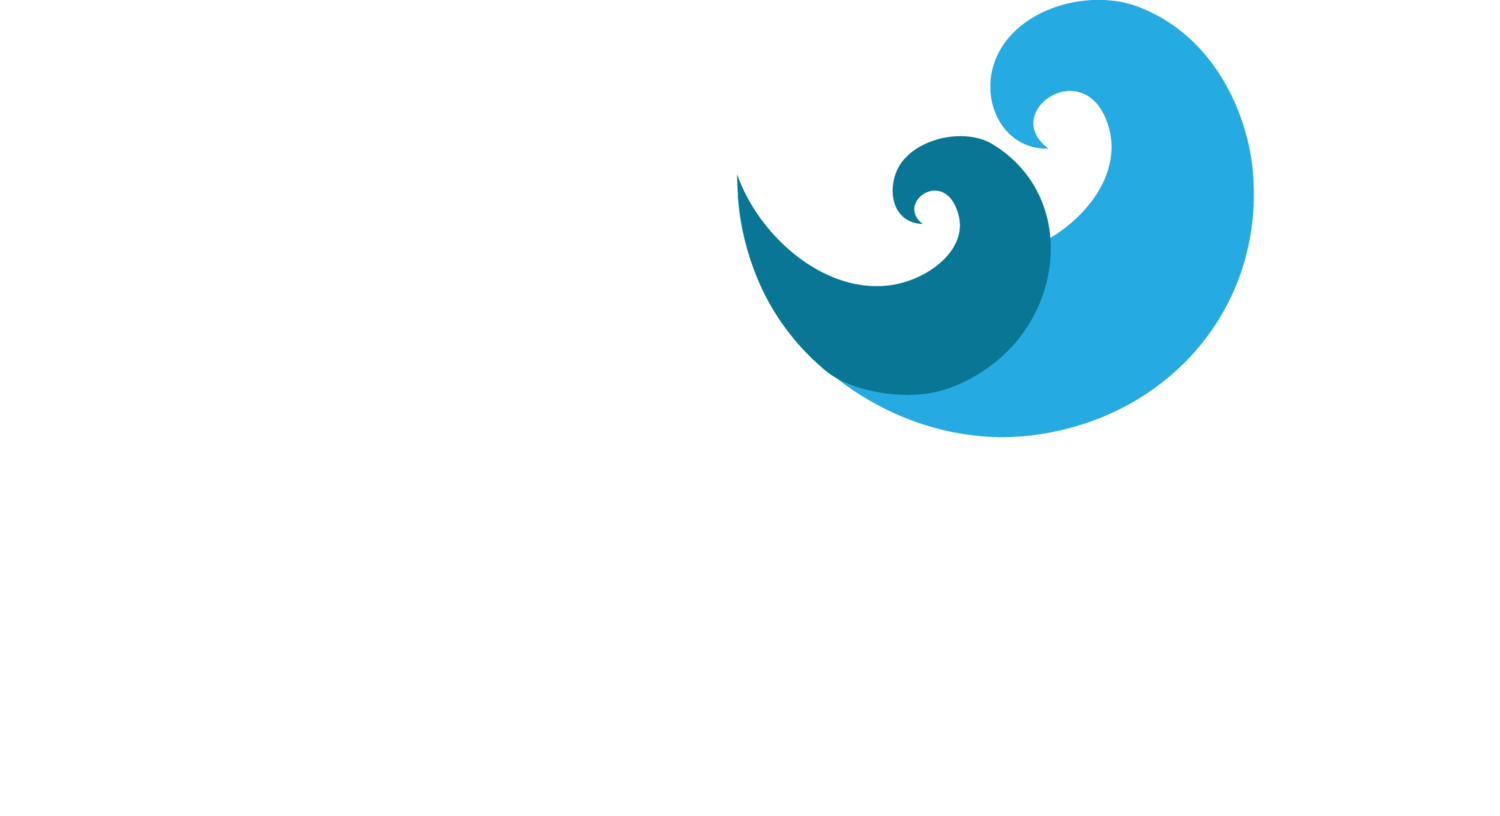 Hightide Communications, LLC